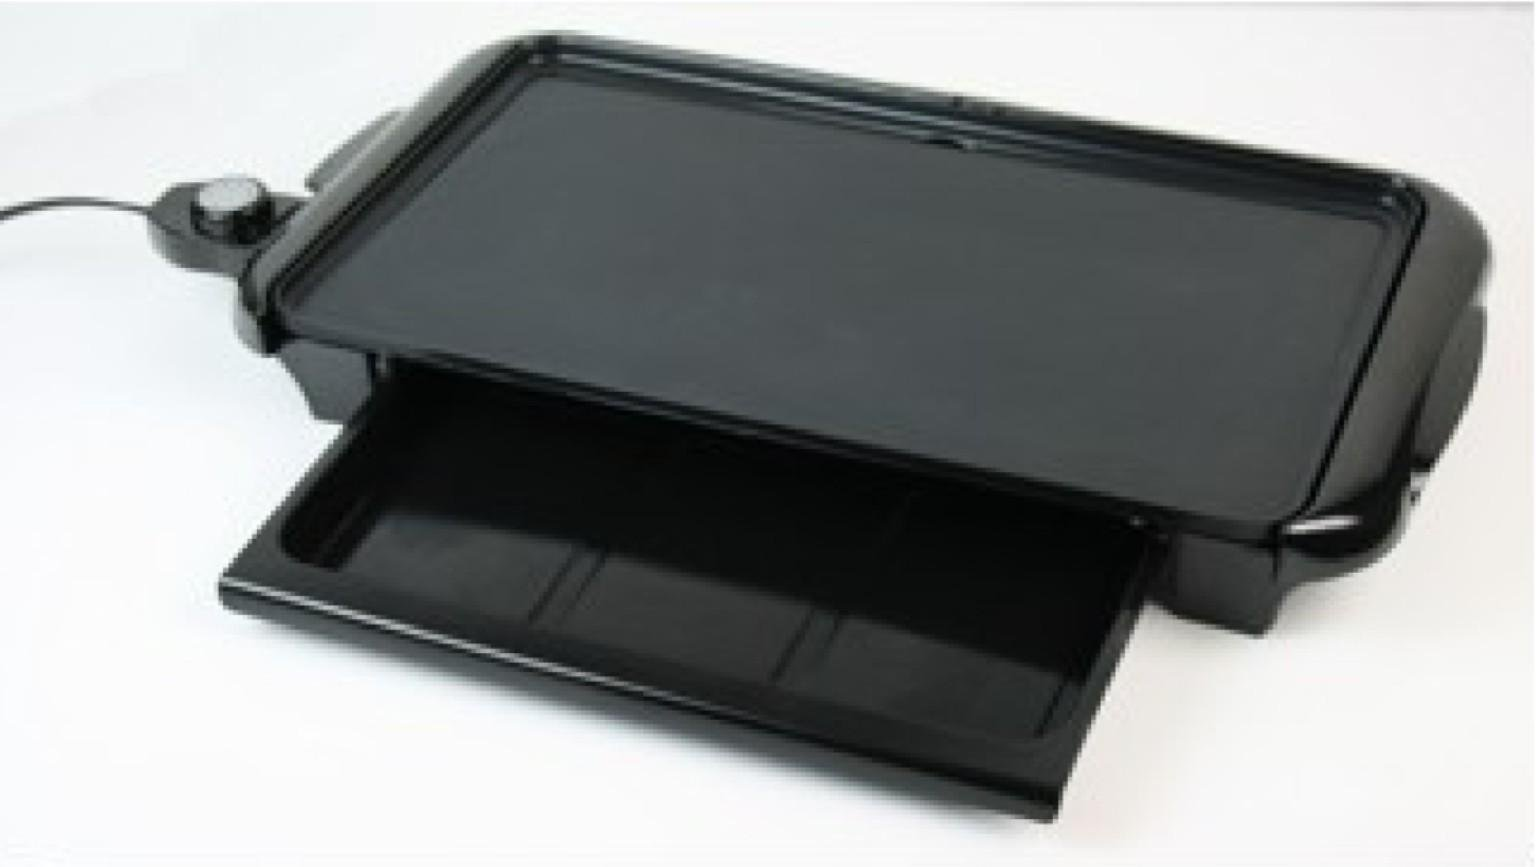 Nostalgia Electrics&8482 Ngd200 Non-Stick Griddle With Warming Drawer Nostalgia Electrics Ngd-200 Non-Stick Griddle With Warming Drawer